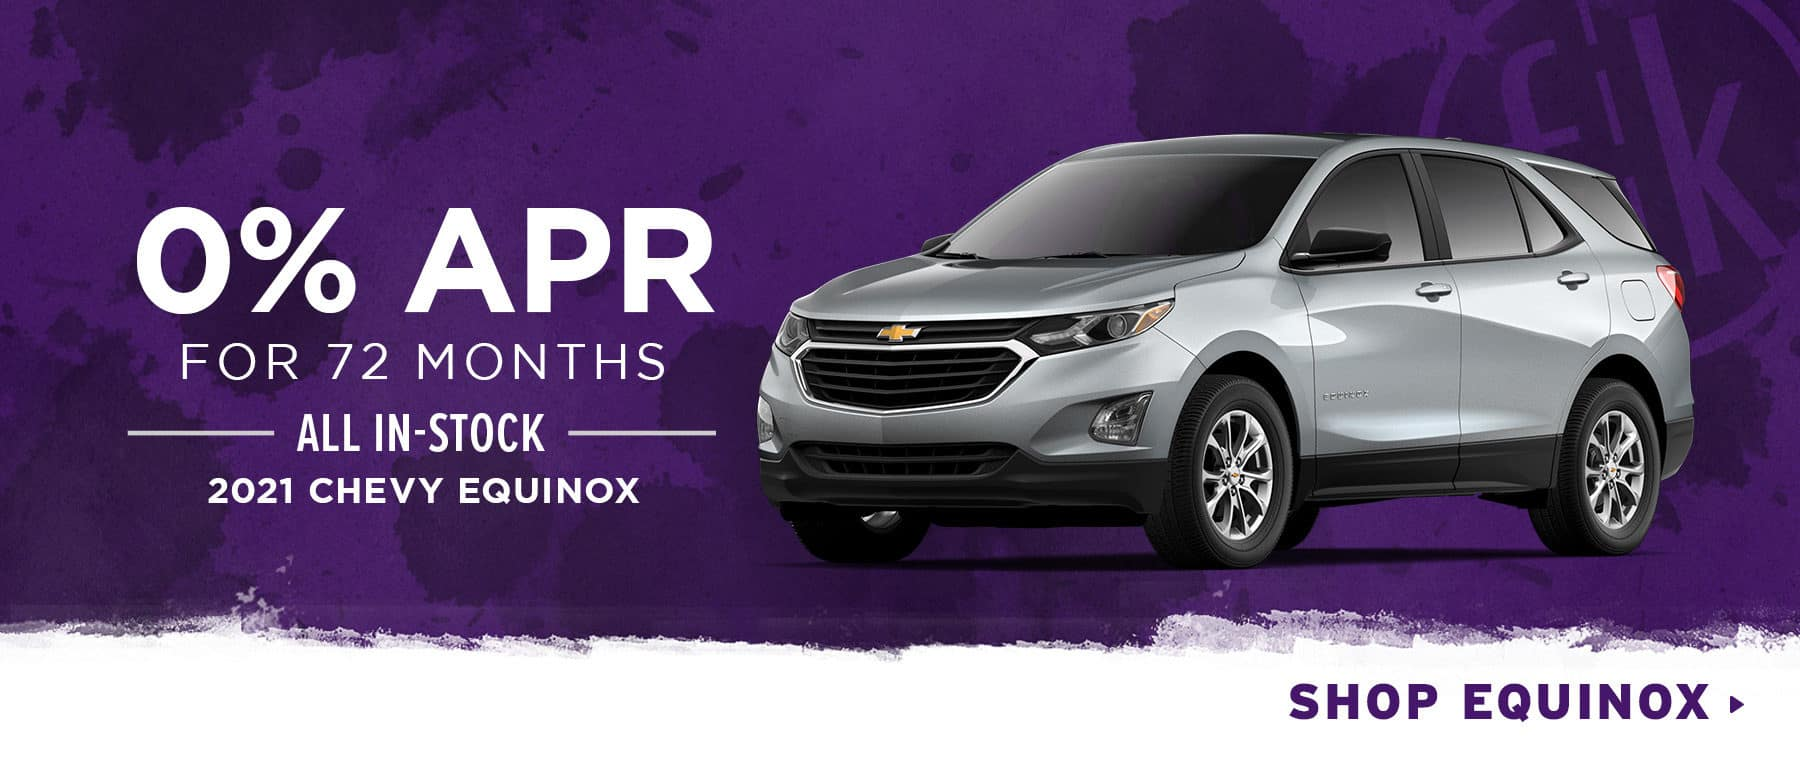 0% for 72 mos. All In-Stock 2021 Chevy Equinox